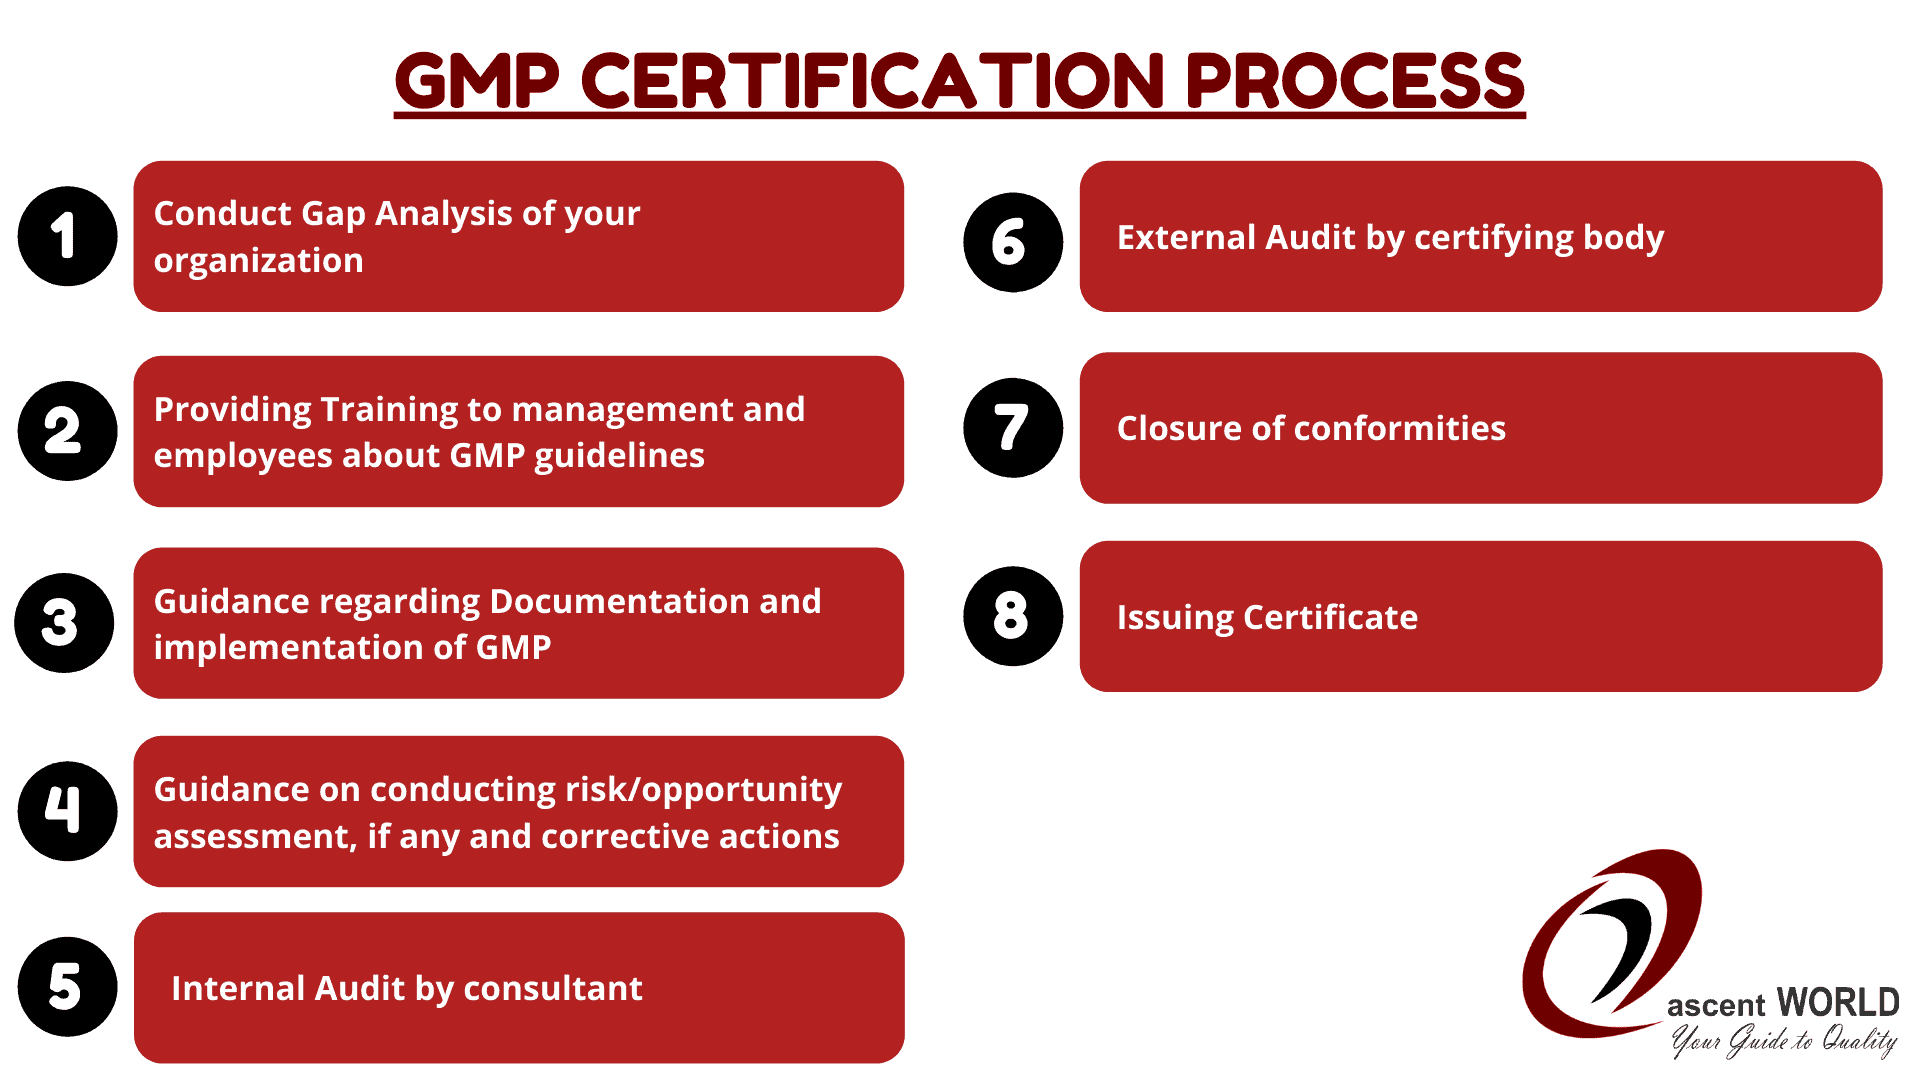 GMP Certification Process in India